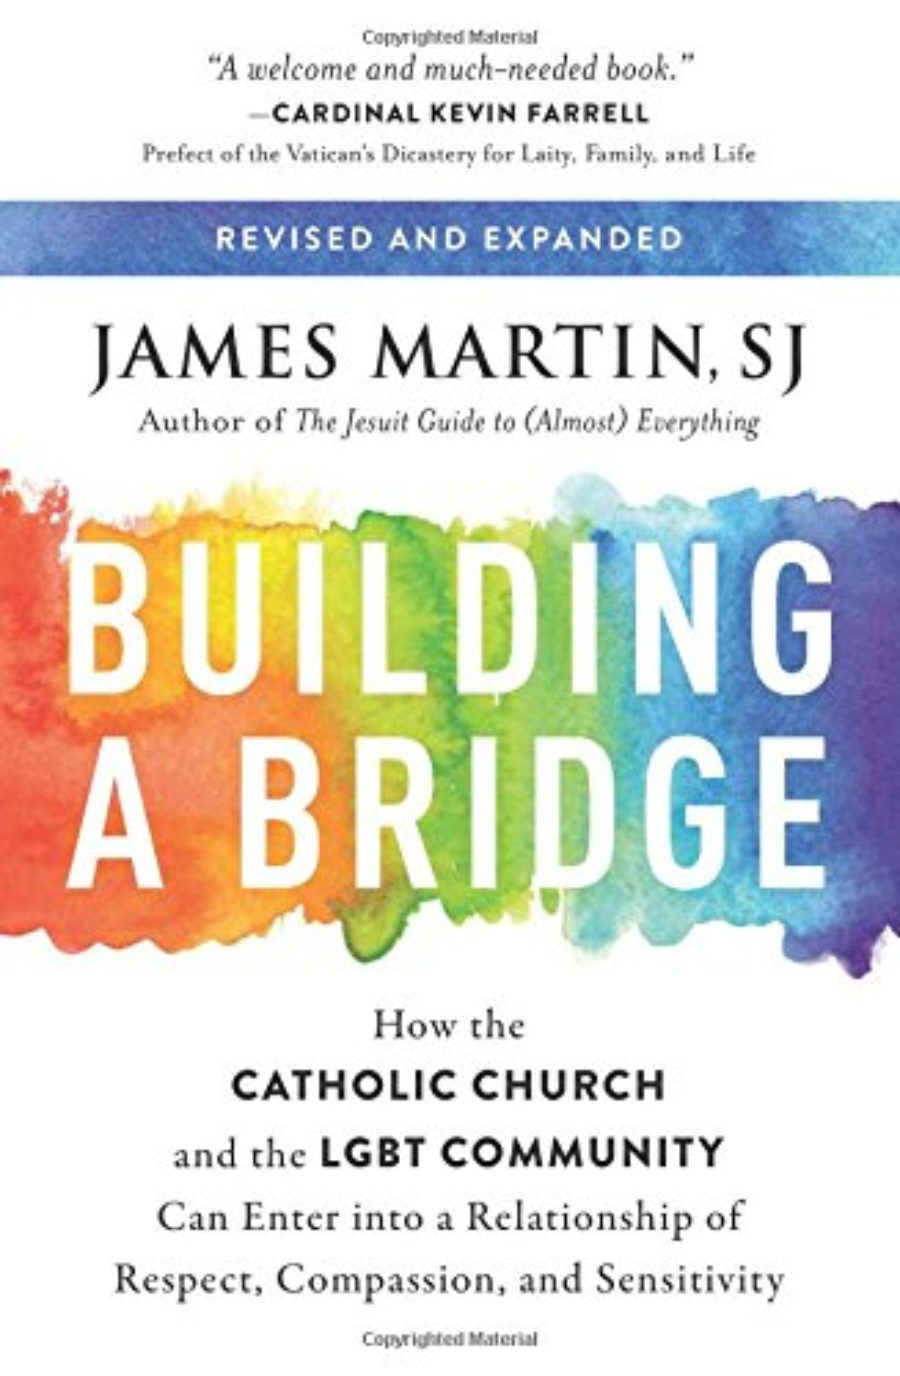 Cover of Building a Bridge: How the Catholic Church and the LGBT Community Can Enter into a Relationship of Respect, Compassion, and Sensitivity